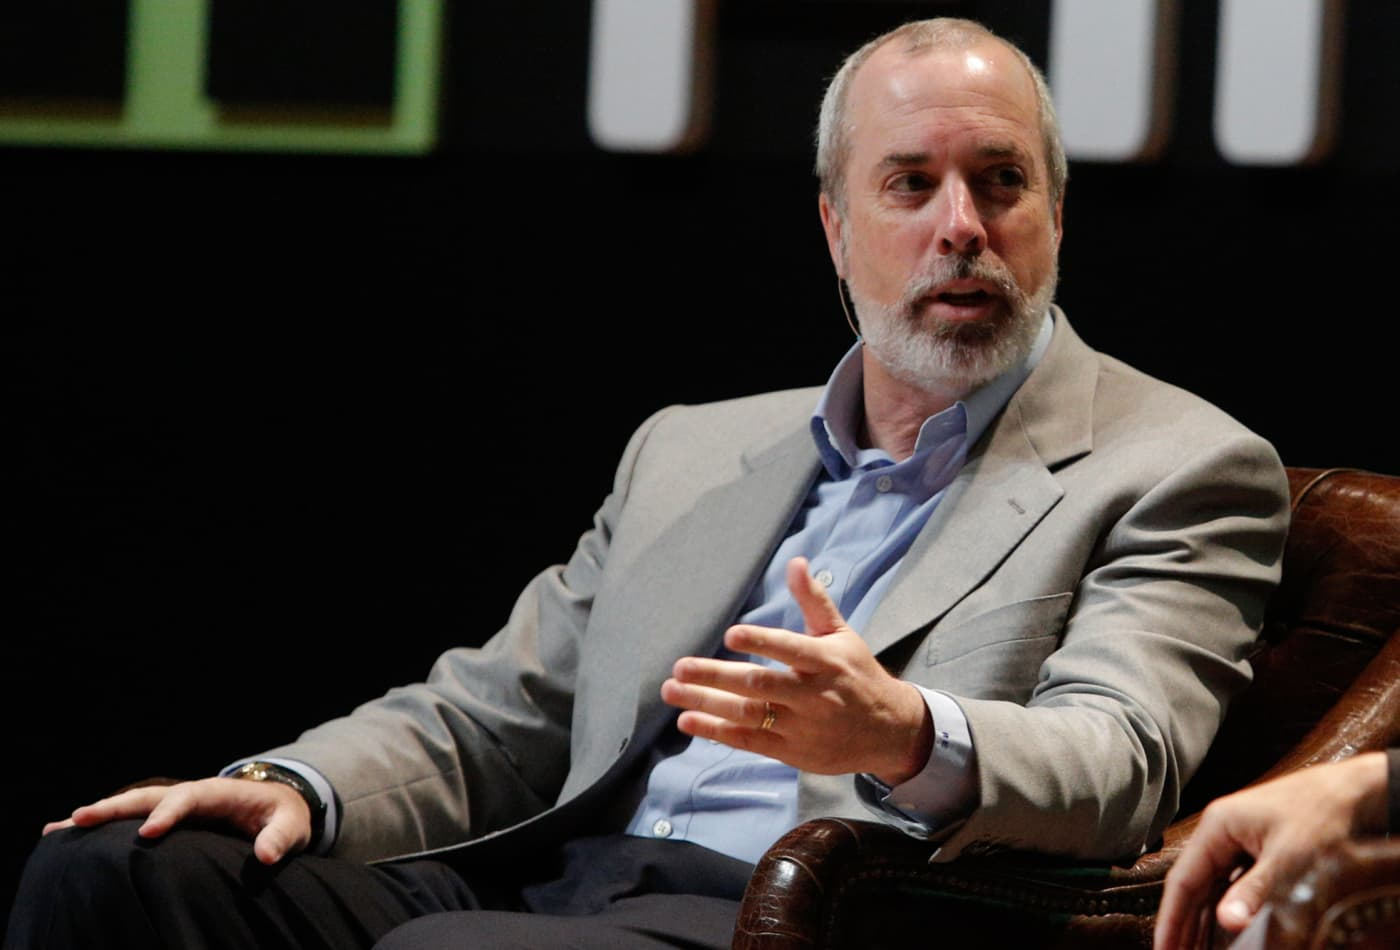 'It's going to get much uglier' — How to invest during the coronavirus pandemic, according to Ric Edelman